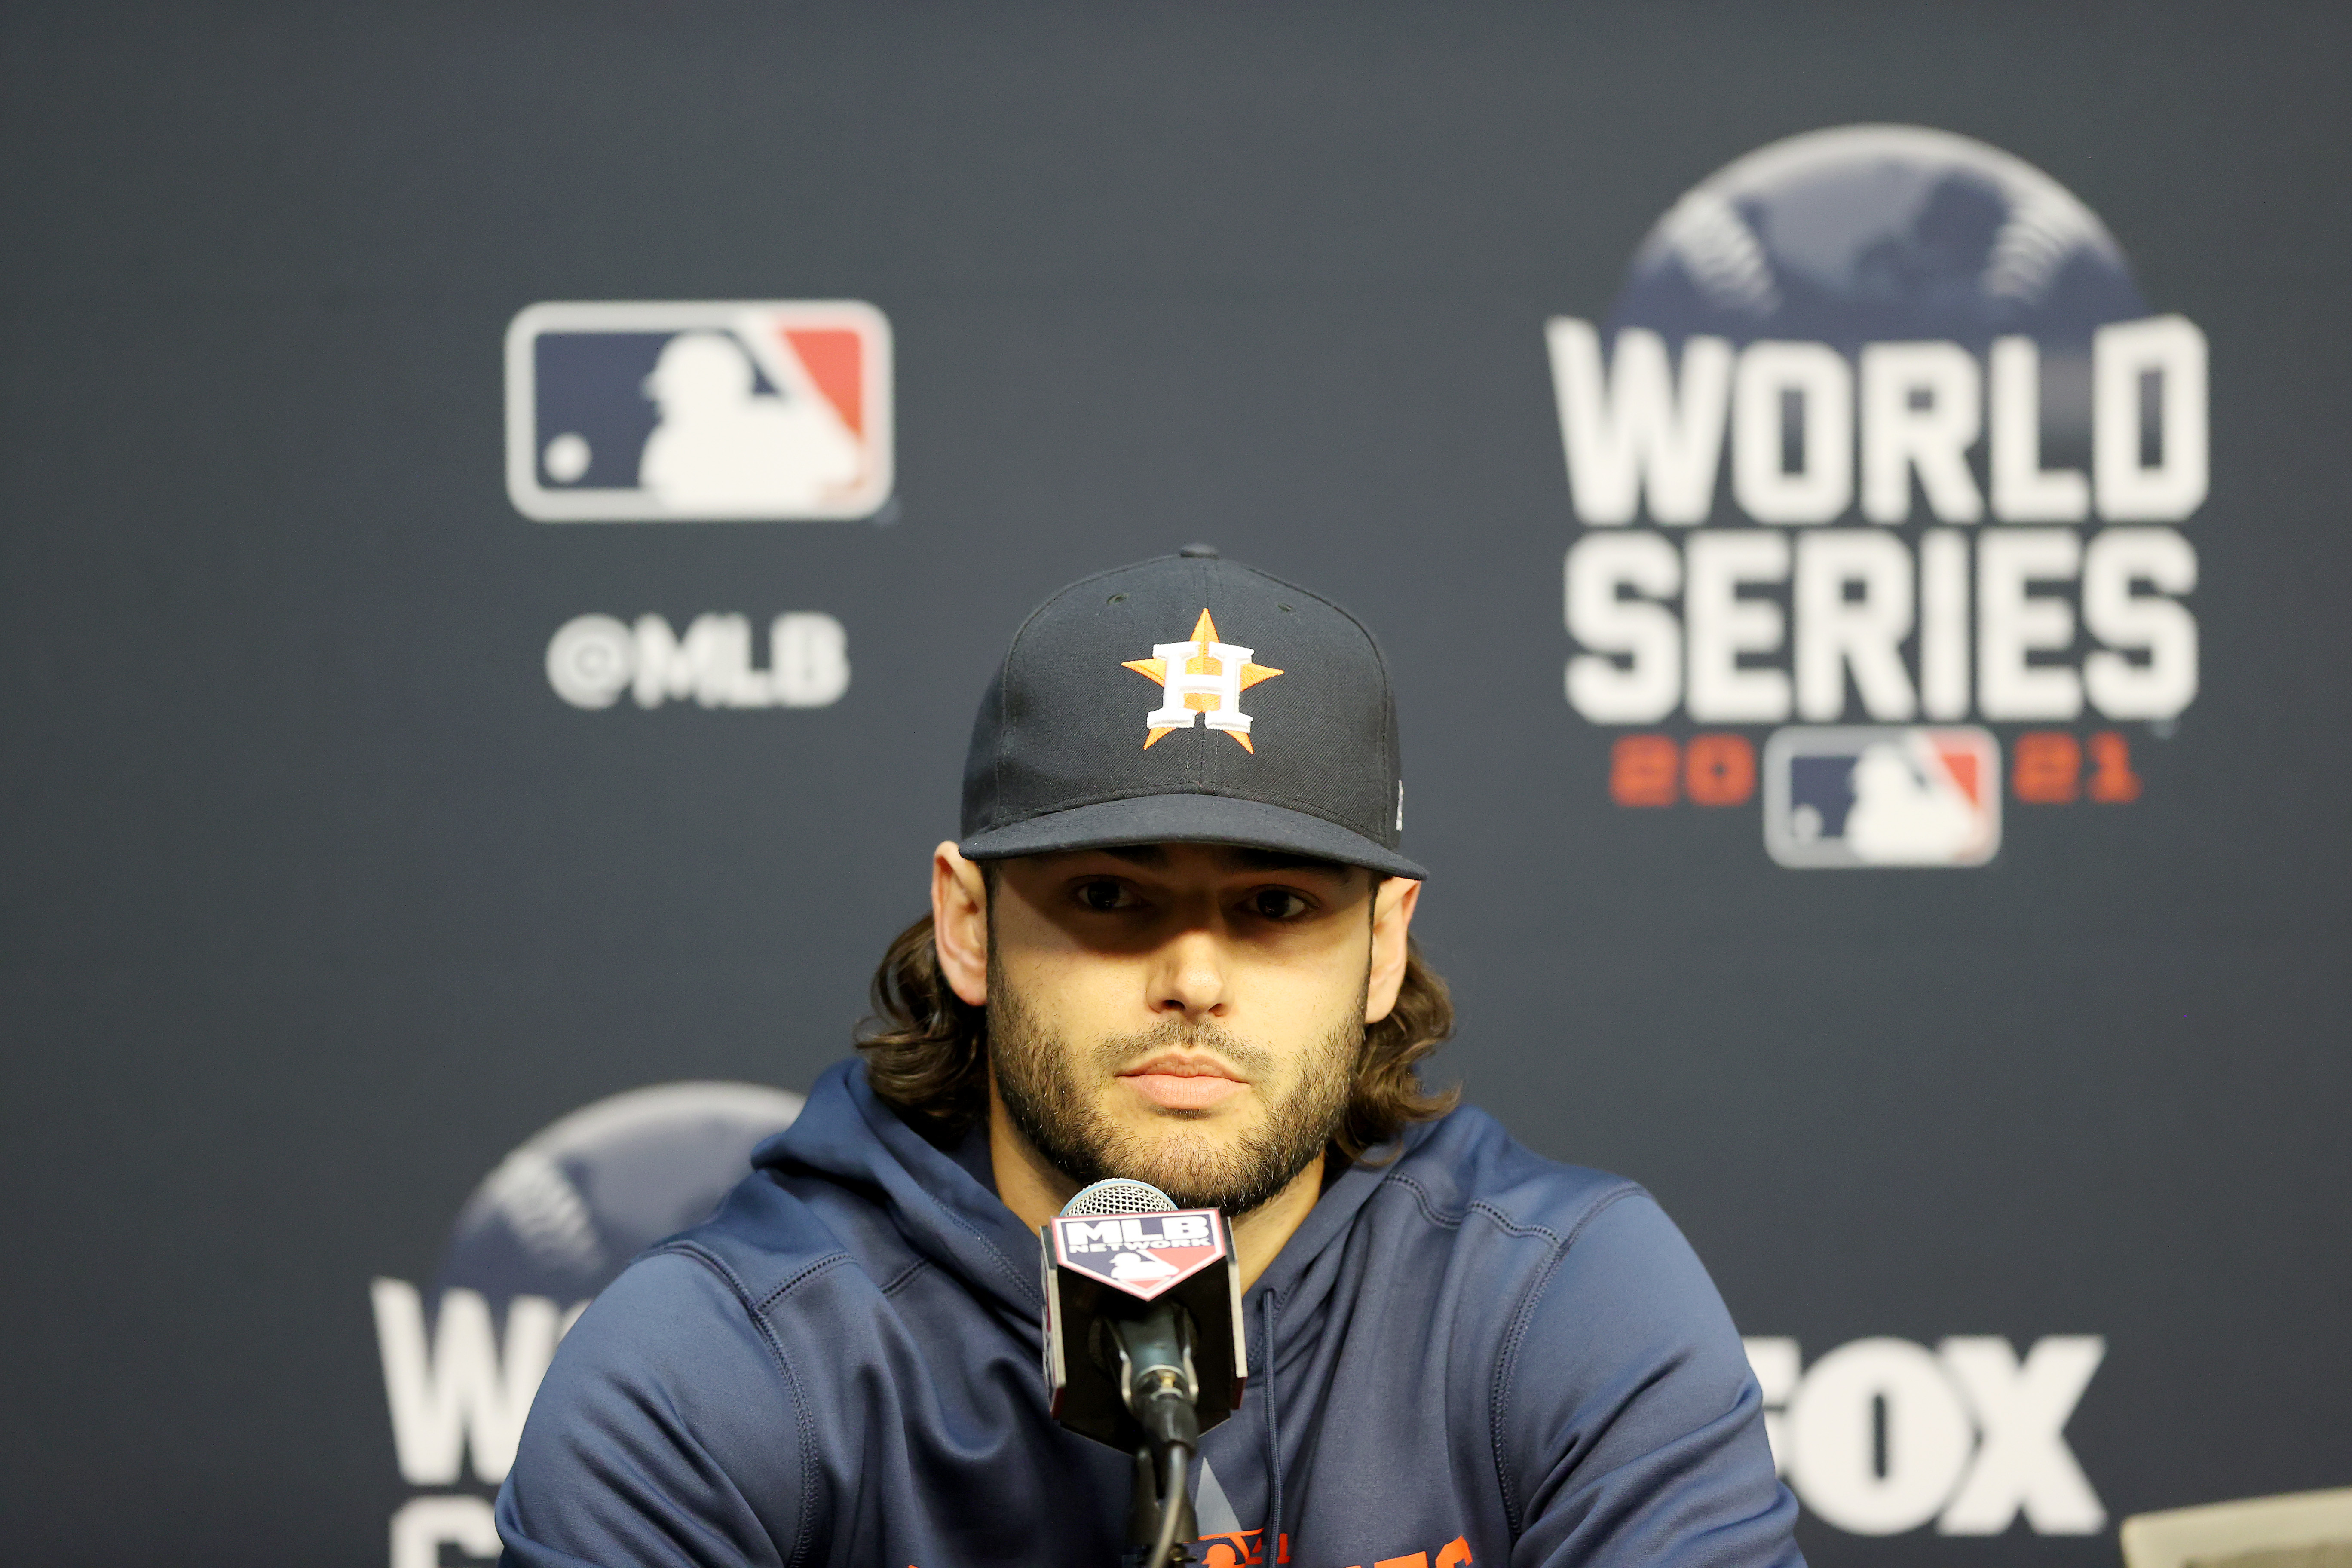 Lance McCullers Jr. of the Houston Astros answers questions during the World Series Workout Day at Minute Maid Park on October 25, 2021 in Houston, Texas.McCullers Jr. is out for the World Series due to injury.